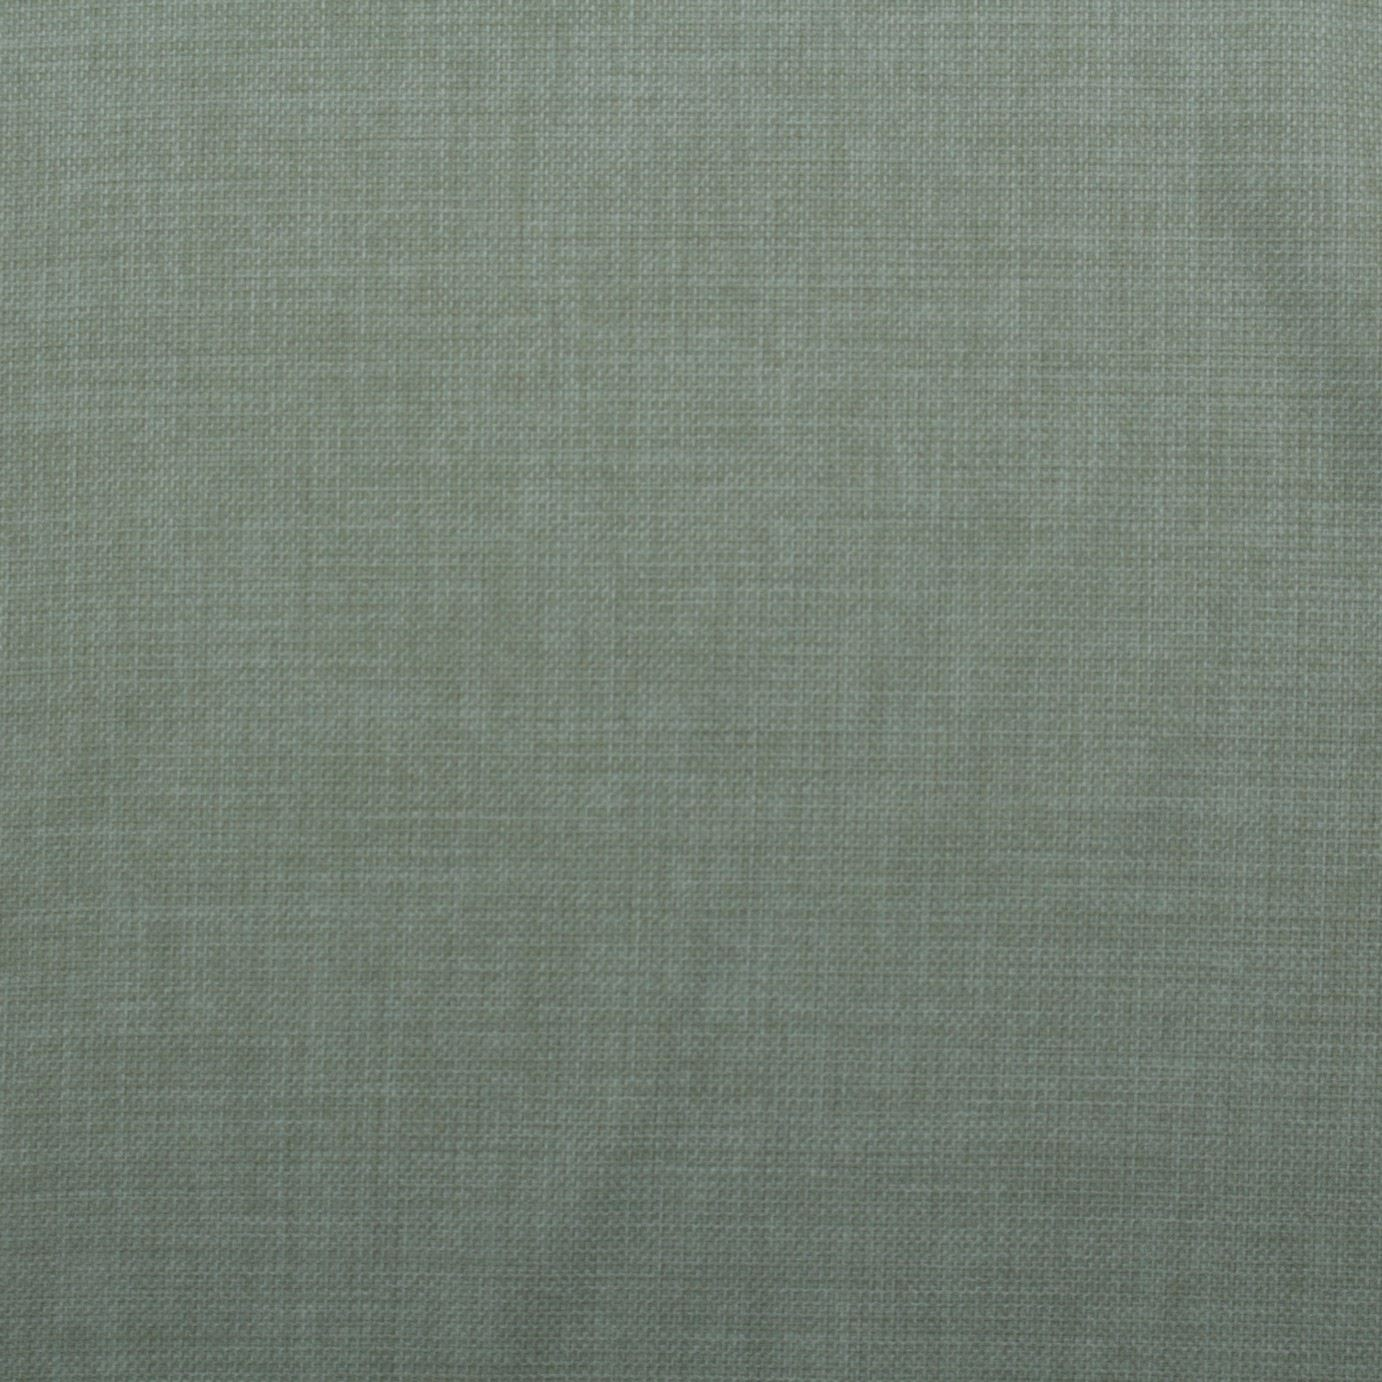 SOFT-PLAIN-LINEN-LOOK-DESIGNER-CURTAIN-CUSHION-SOFA-UPHOLSTERY-FABRIC-MATERIAL